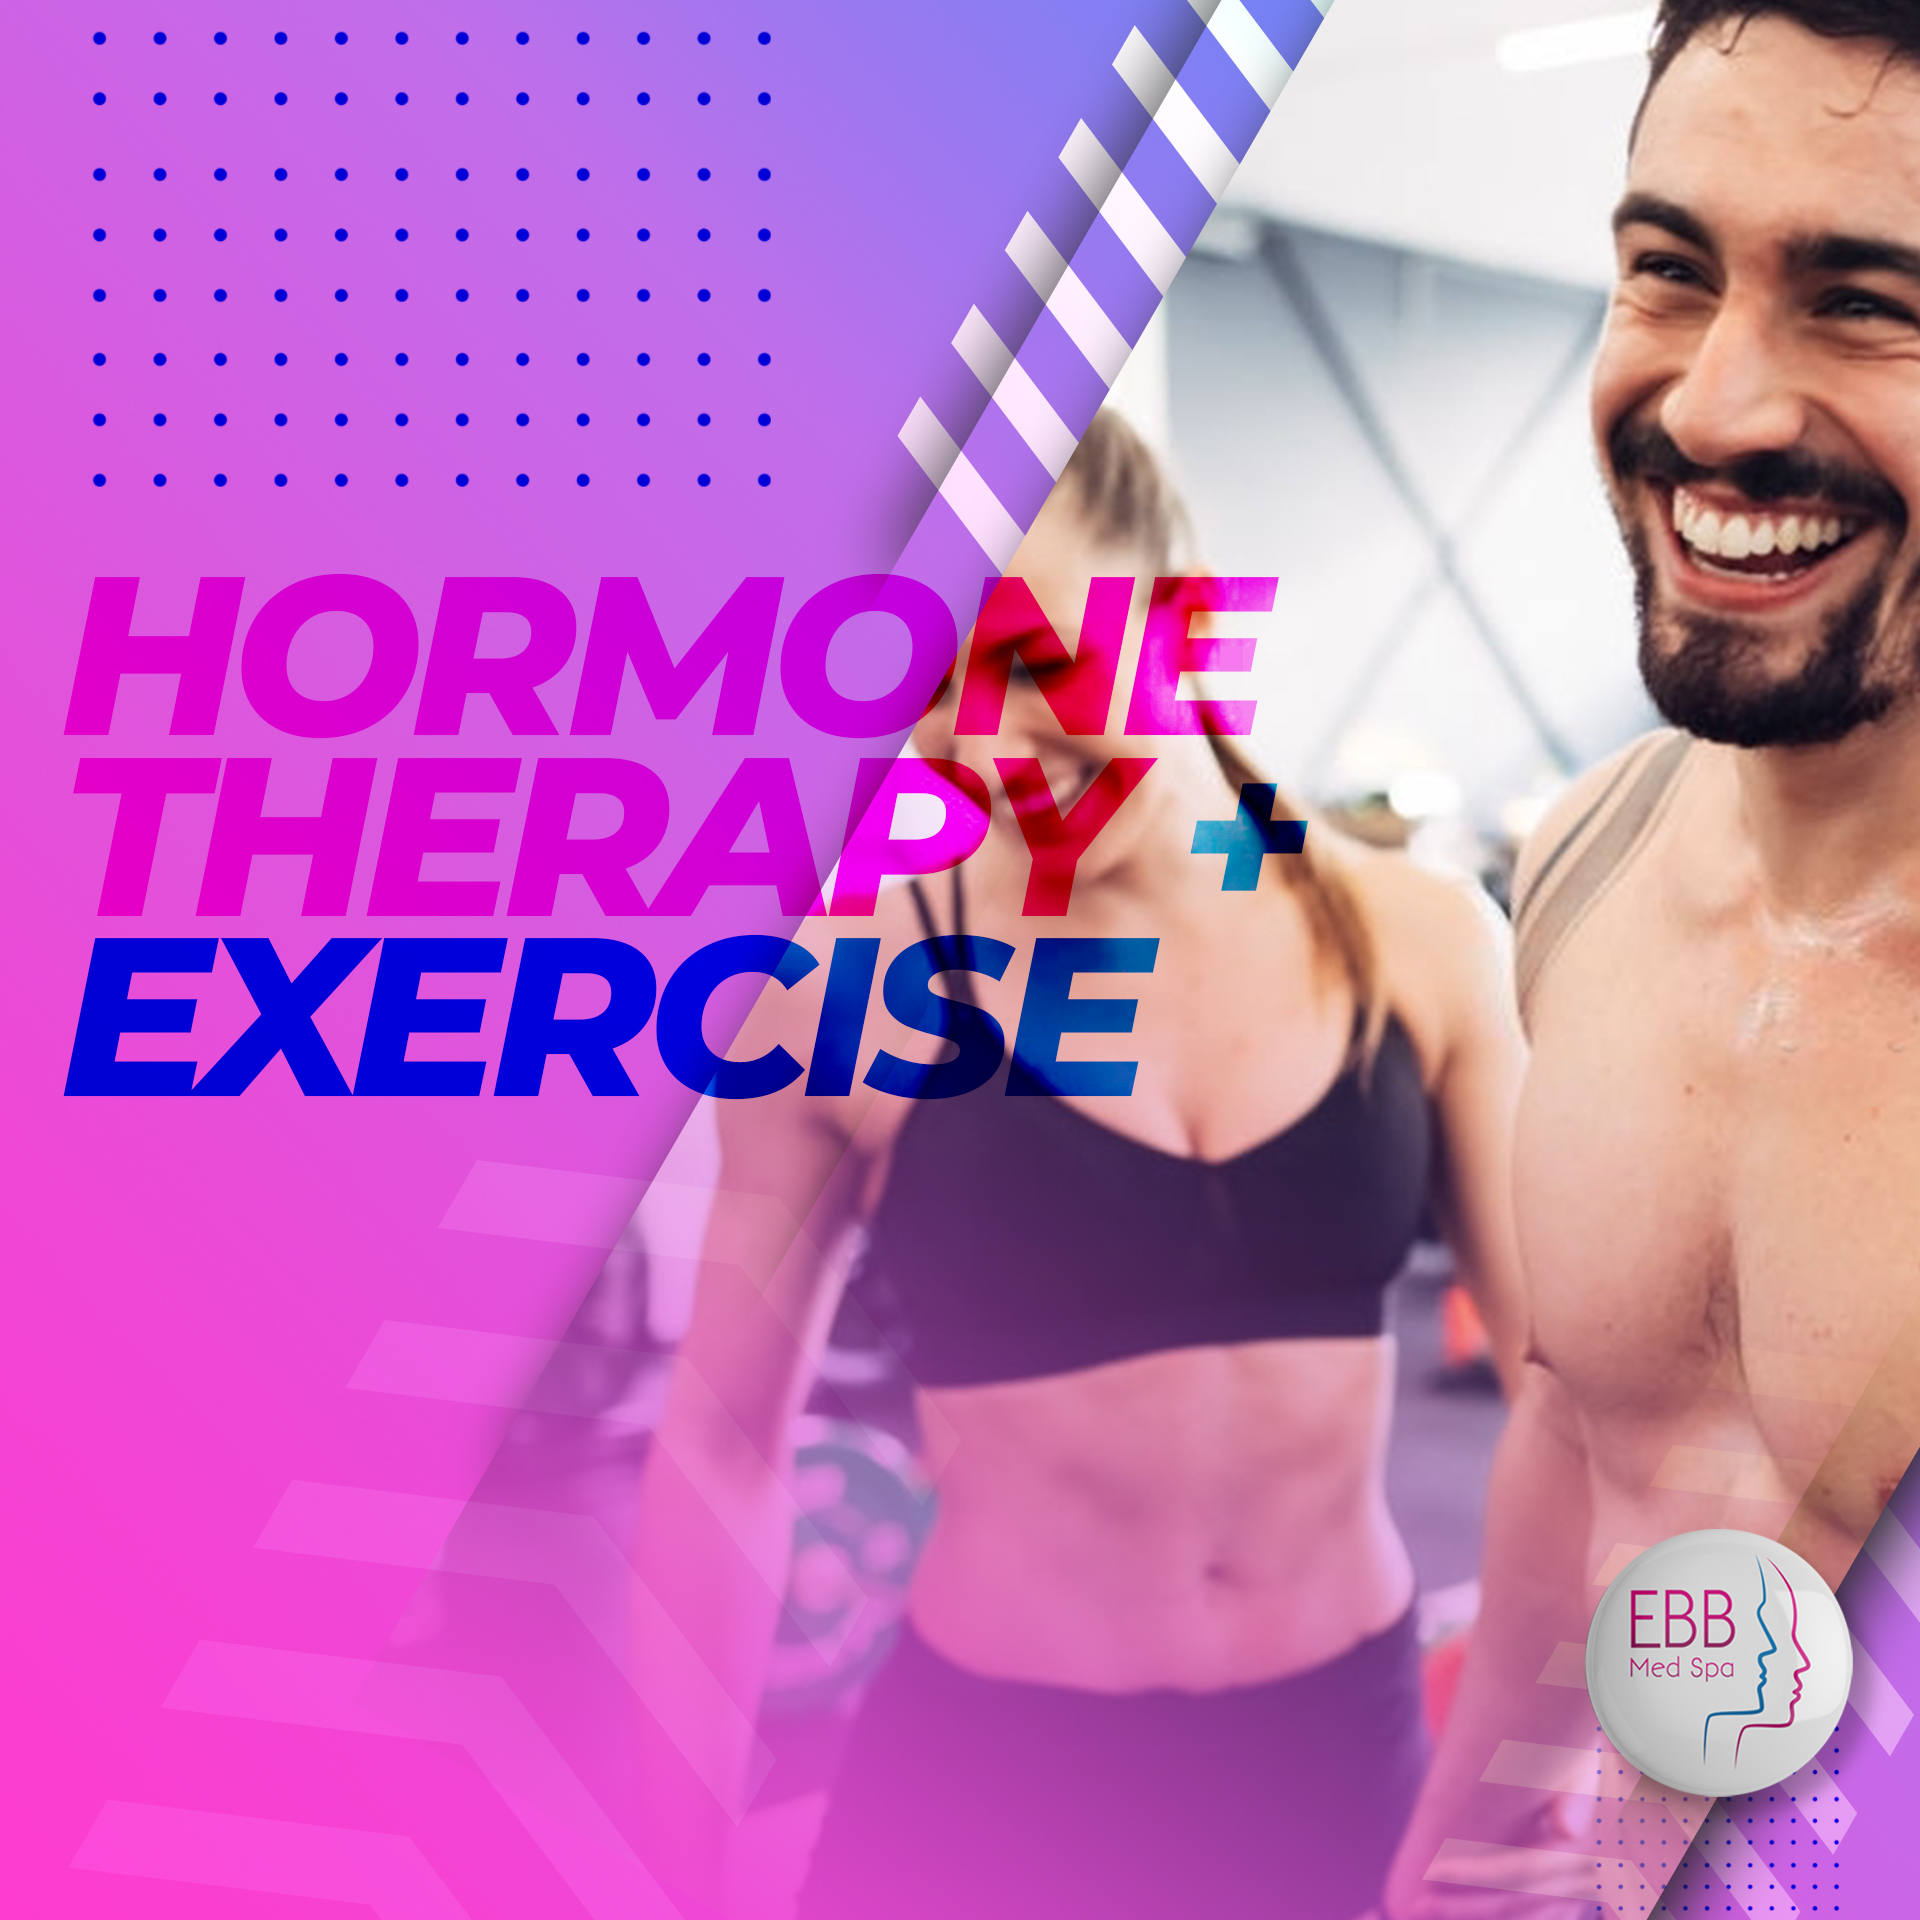 04-07-EBB-M-ED-SPA---Hormone-Therapy-+-Exercise-2